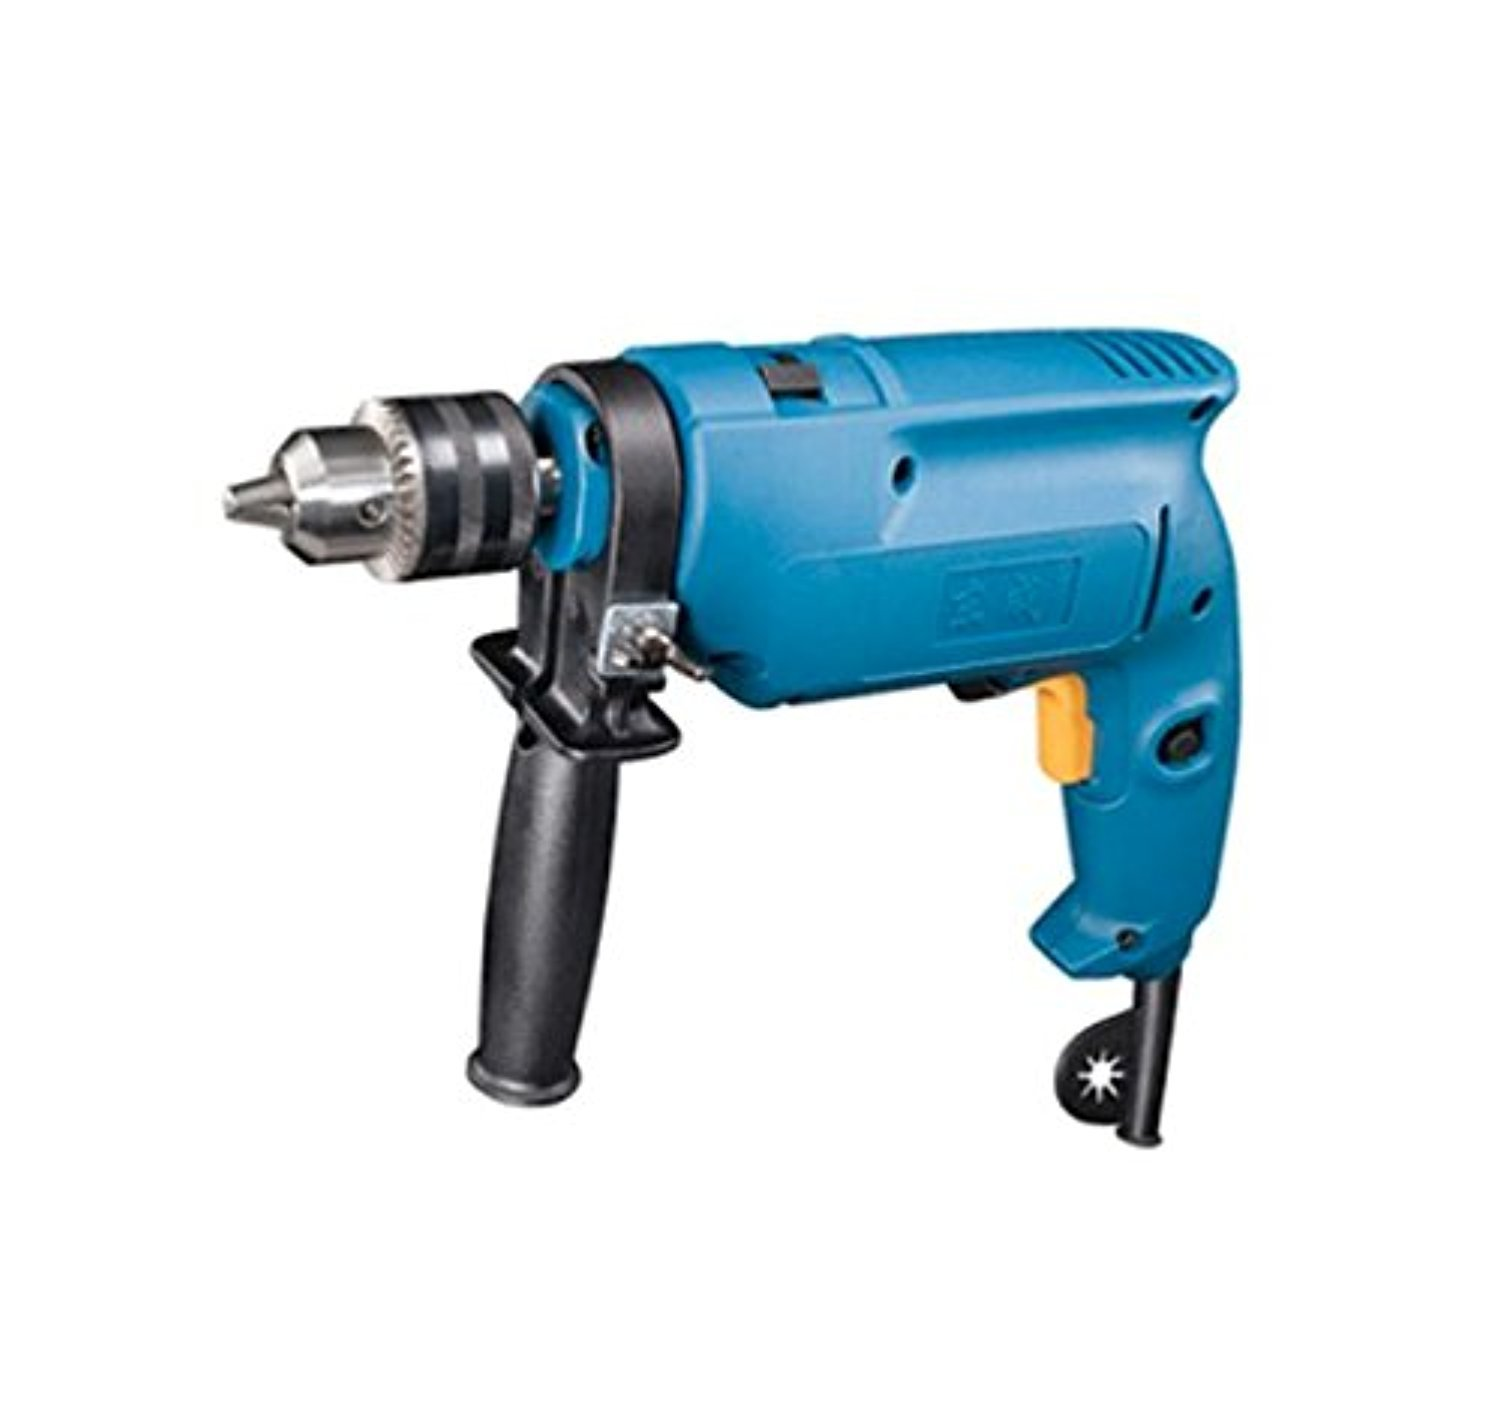 Dongcheng Impact Drill DZJ02-13 metal Rotating Handle Variable Speed Trigger